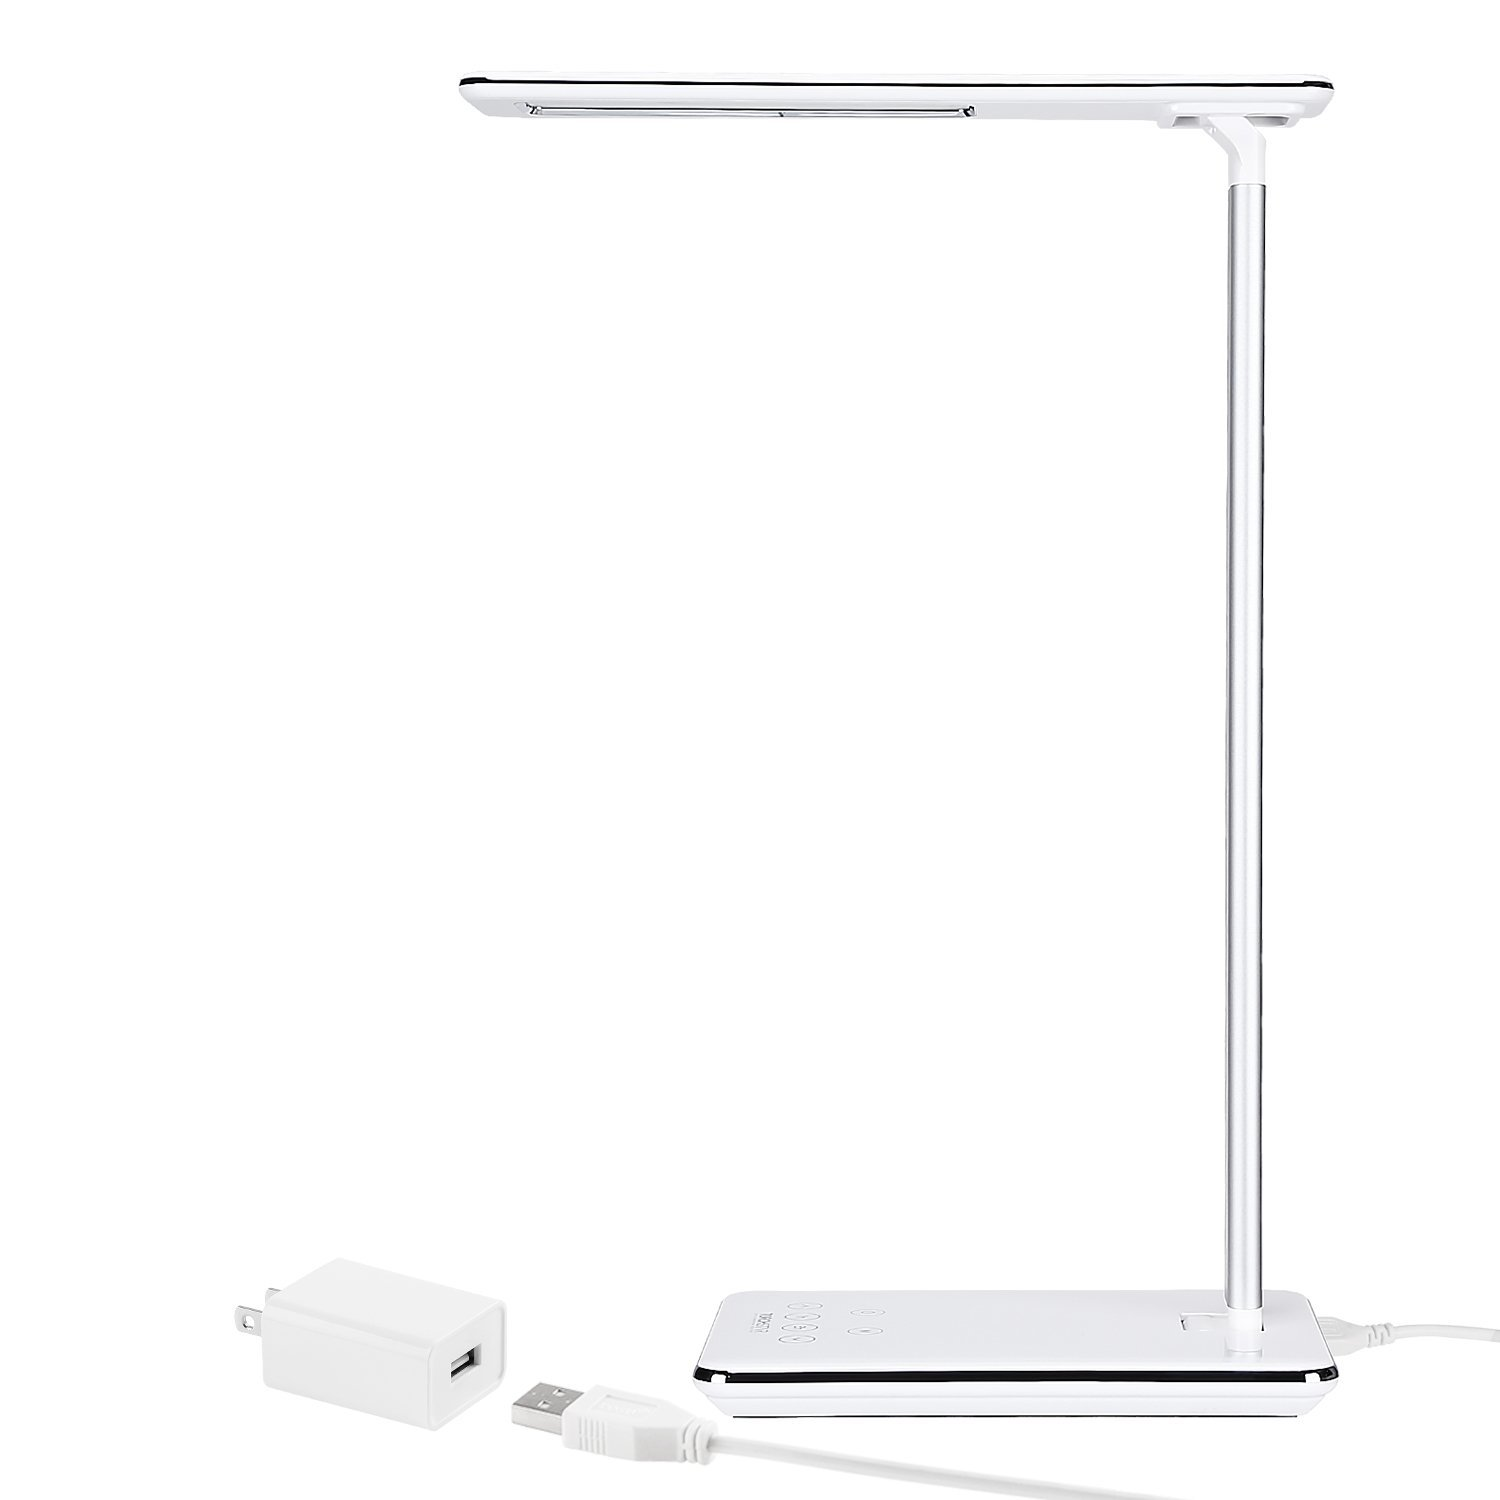 Torchstar Dimmable Led Desk Lamp, 4 Lighting Modes (Reading/Studying/Relaxation/Bedtime), Fully Adjustable Brightness, Touch Sensitive Control, Usb Charging Port, 1 & 2 Hour Auto Timer, Piano White by Torch Star